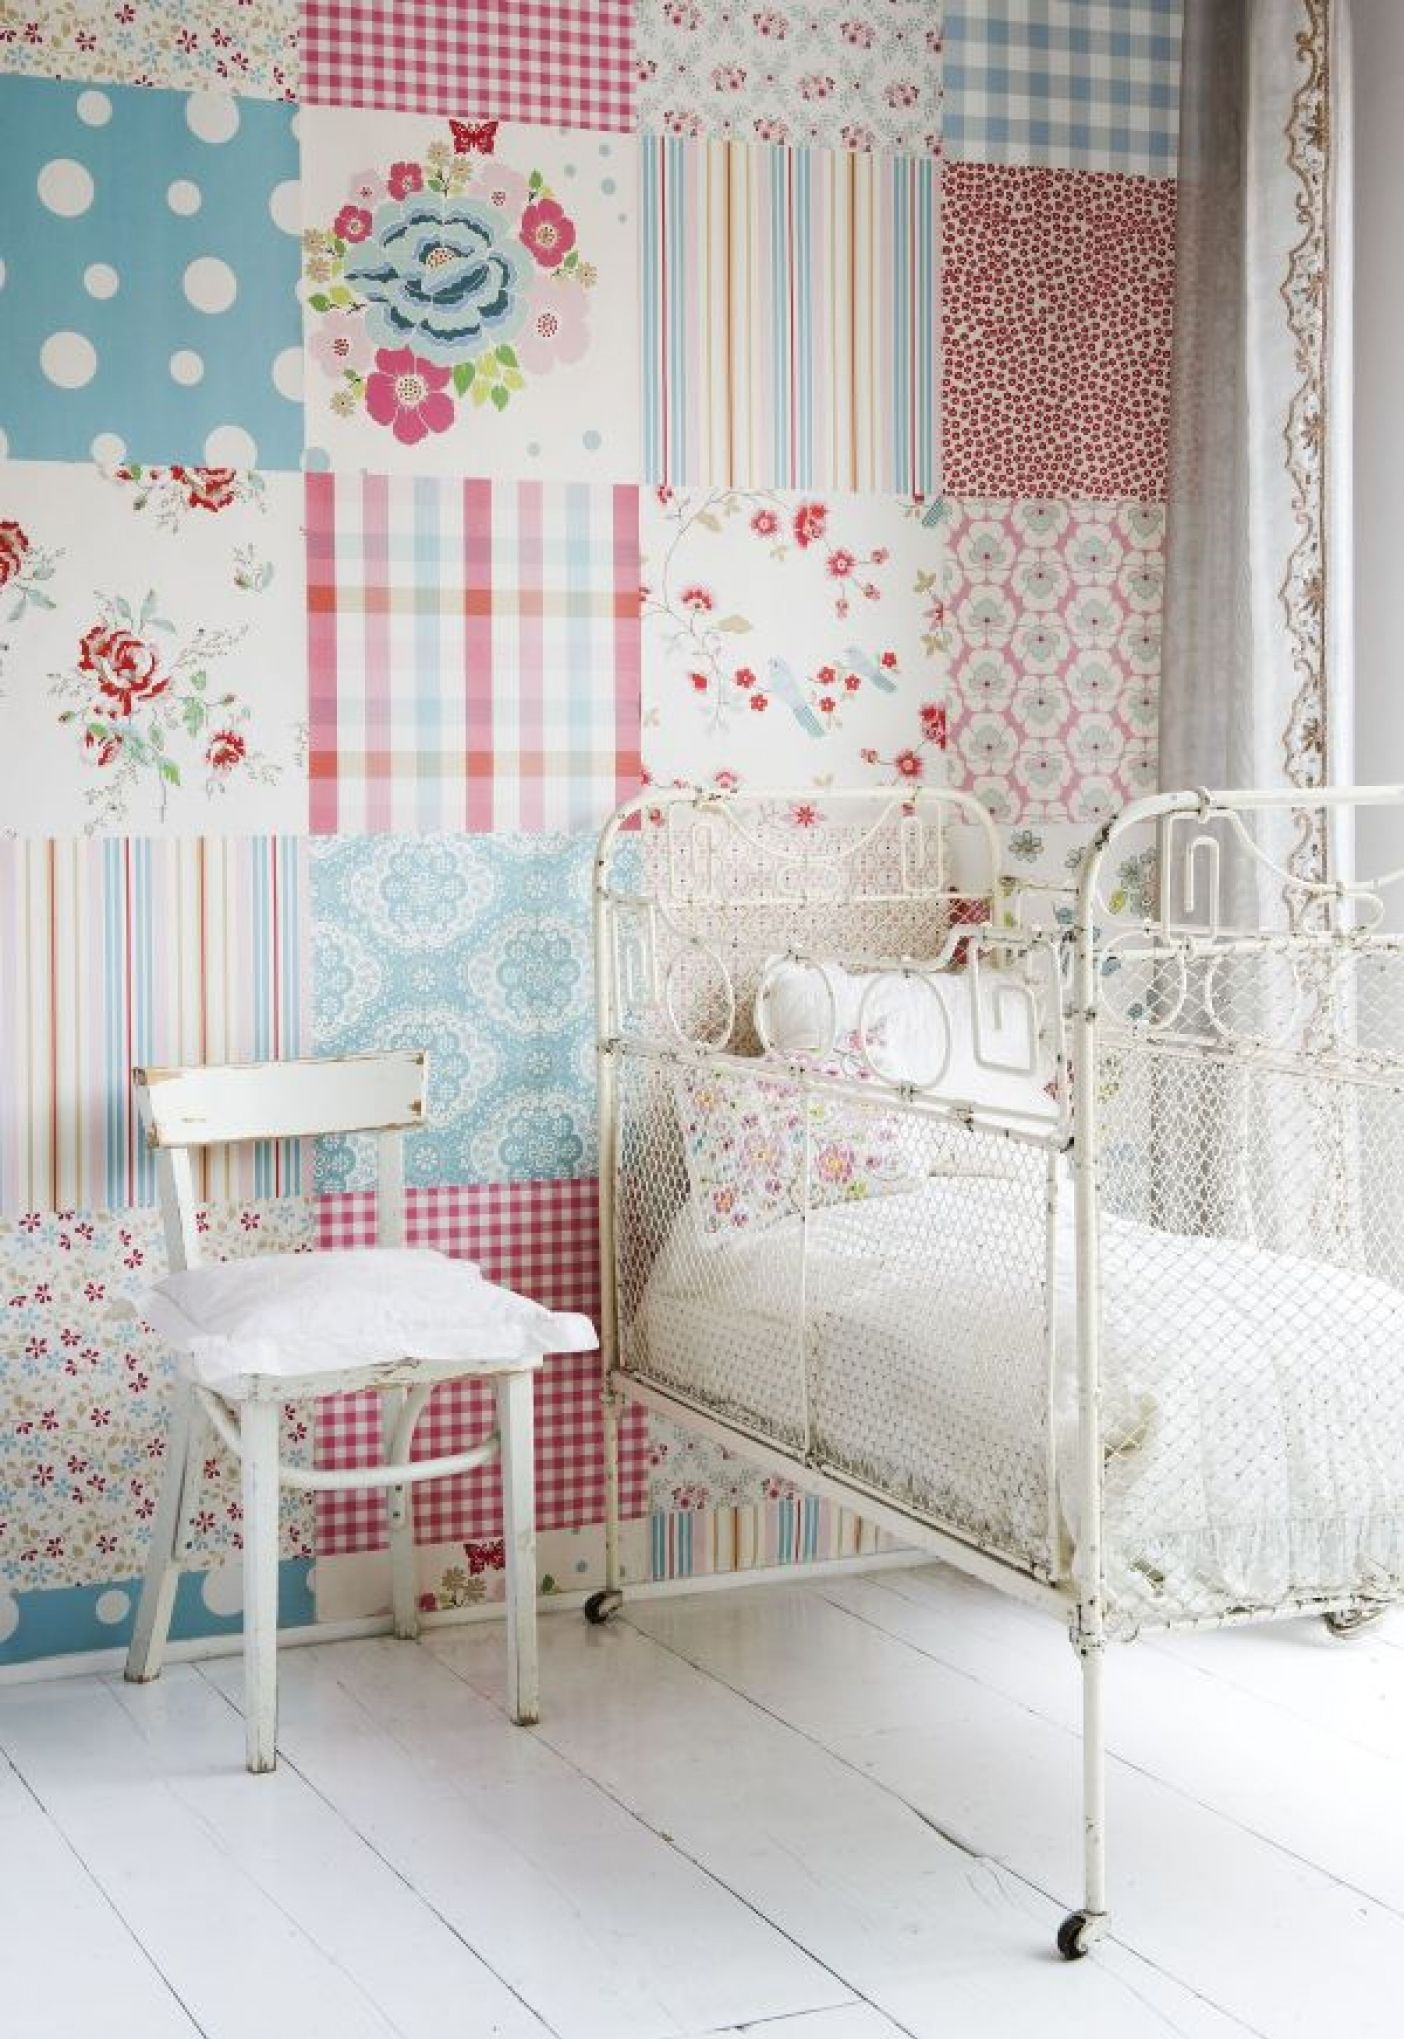 Mural Patchwork Girls Paper Moon Wallpapers A pretty